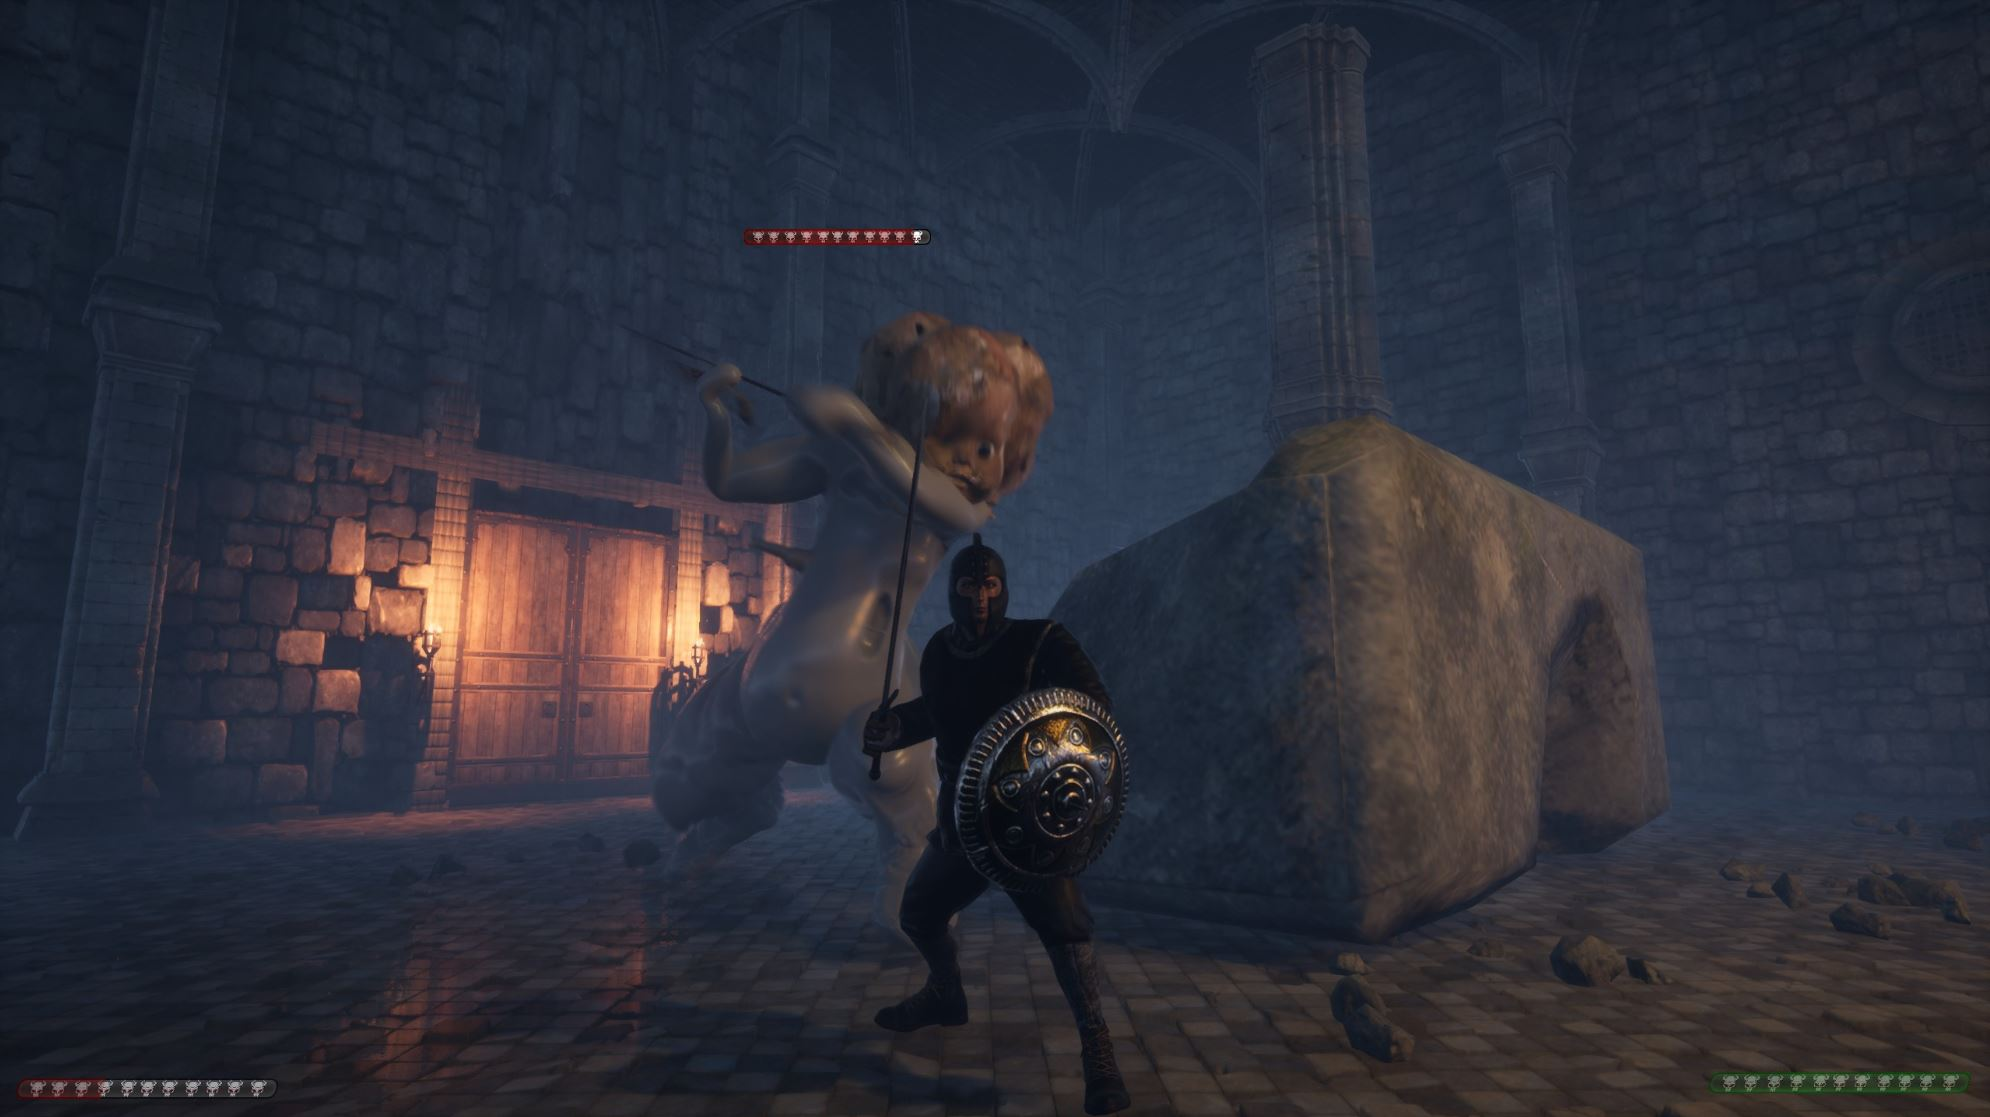 Quark Souls: The Absolute Worst Souls Likes on the Steam Store